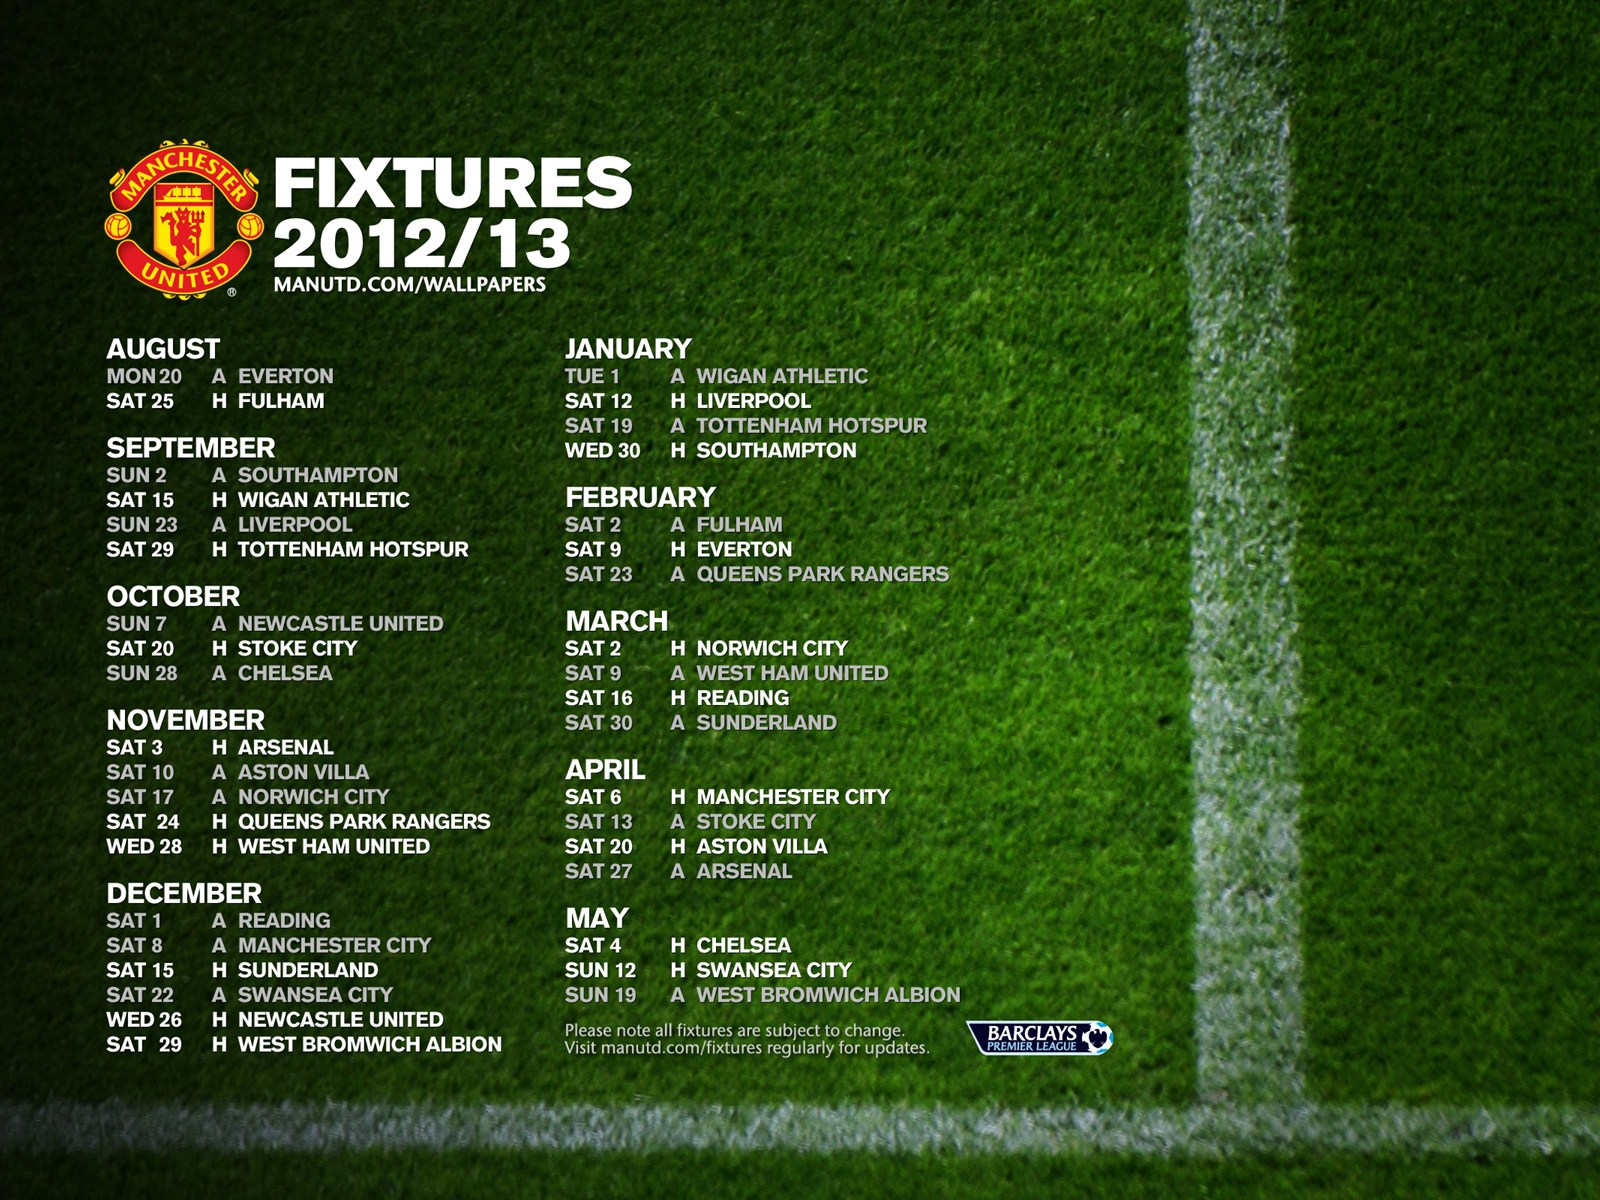 Premier League fixtures wallpaper manchester united 2012-2013 version